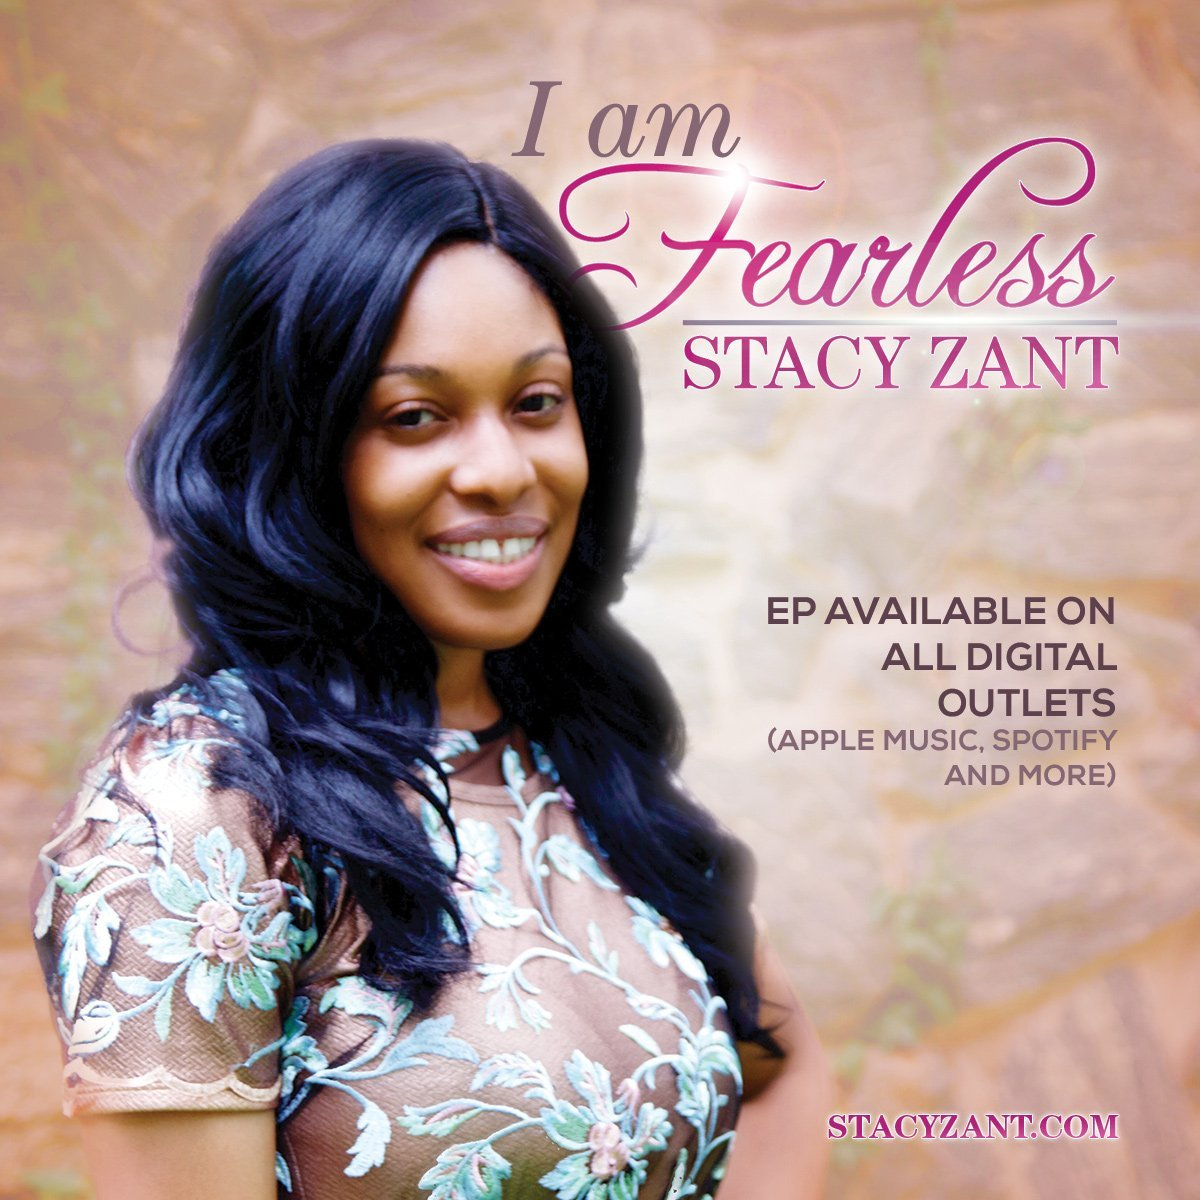 I Am Fearless is available on all digital outlets and platforms. Stream and listen on Spotify